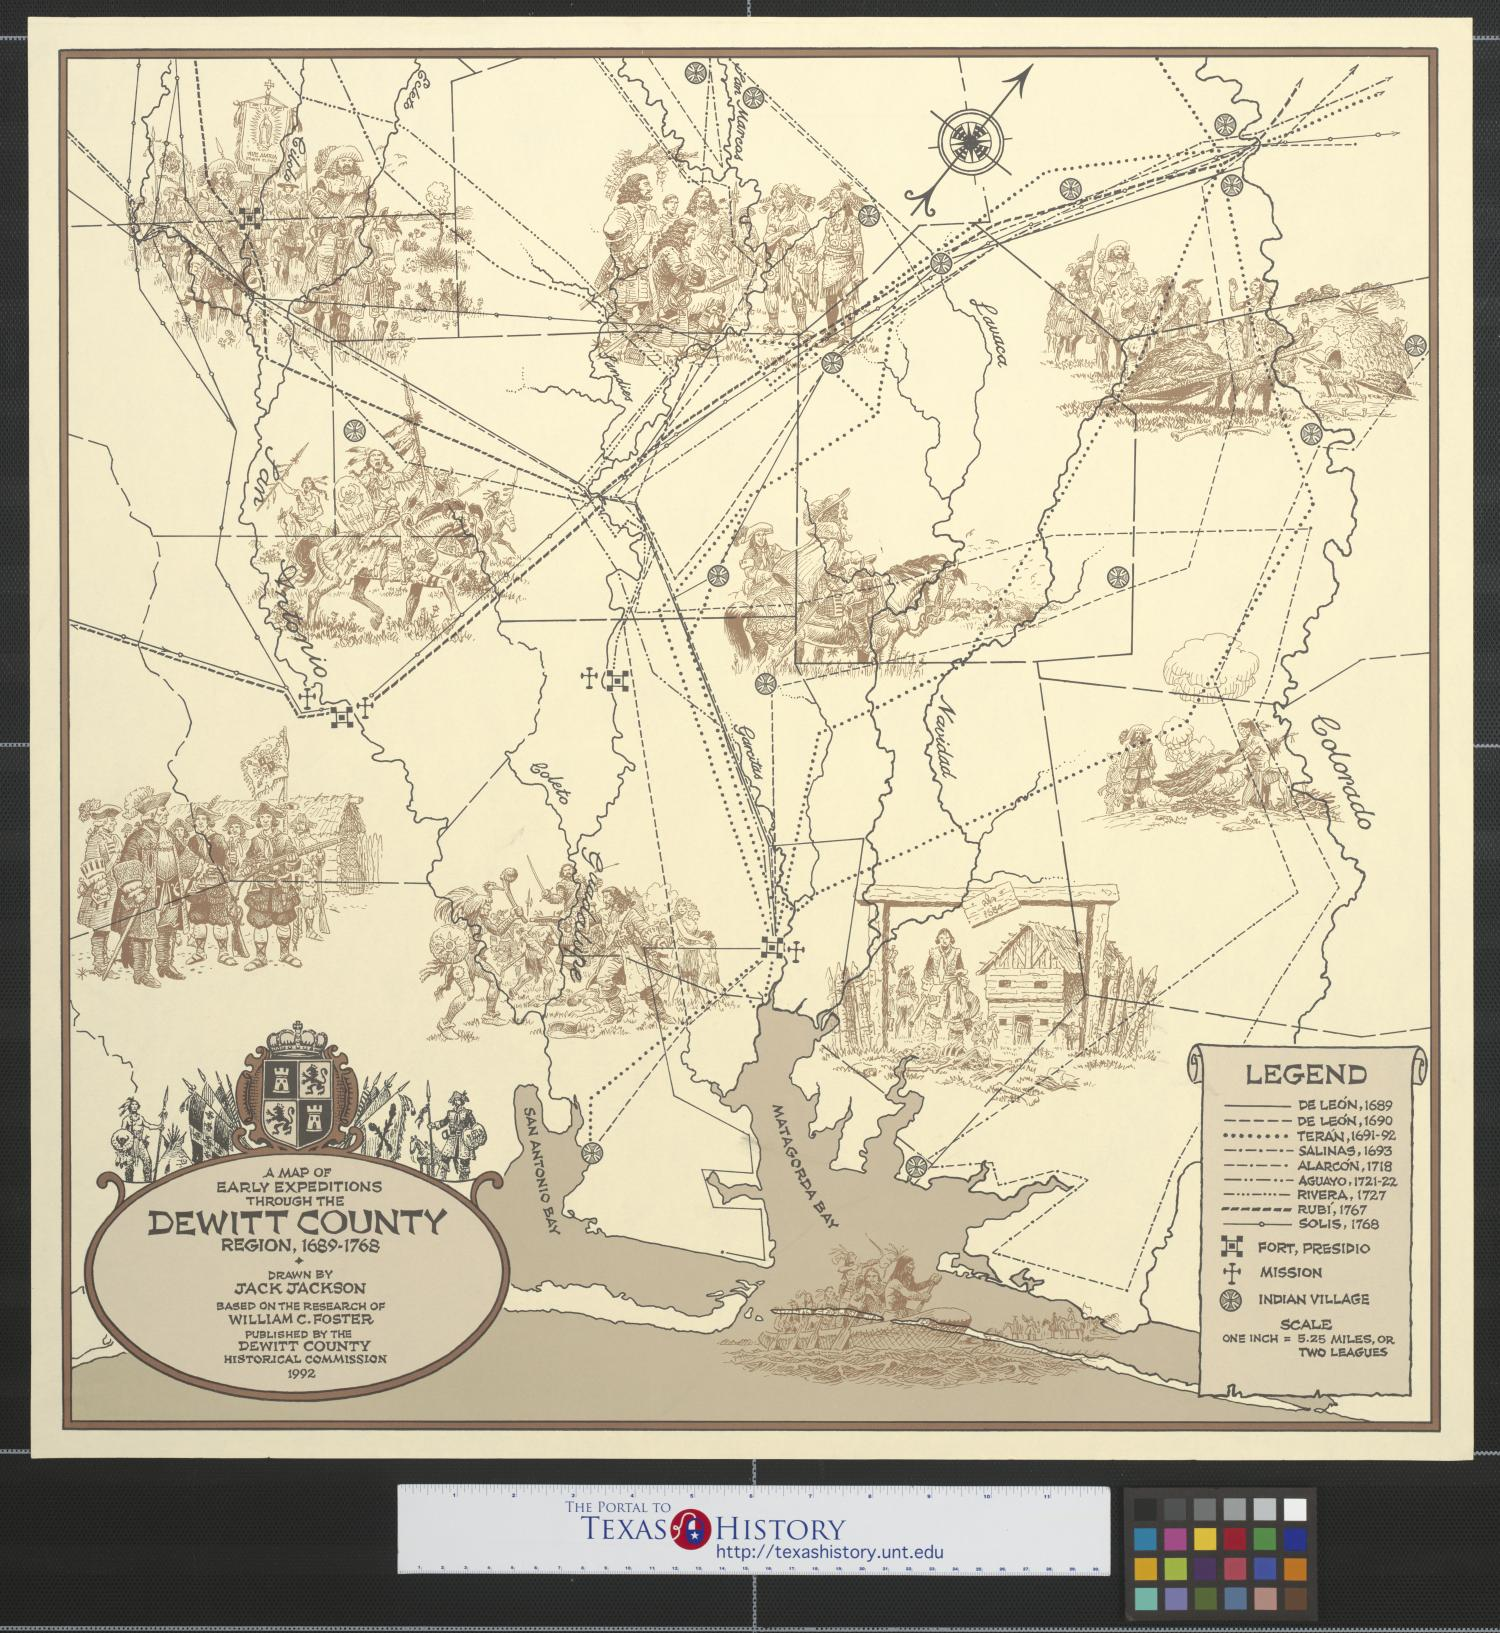 A map of early expeditions through the Dewitt County region, 1689-1768.                                                                                                      [Sequence #]: 1 of 2